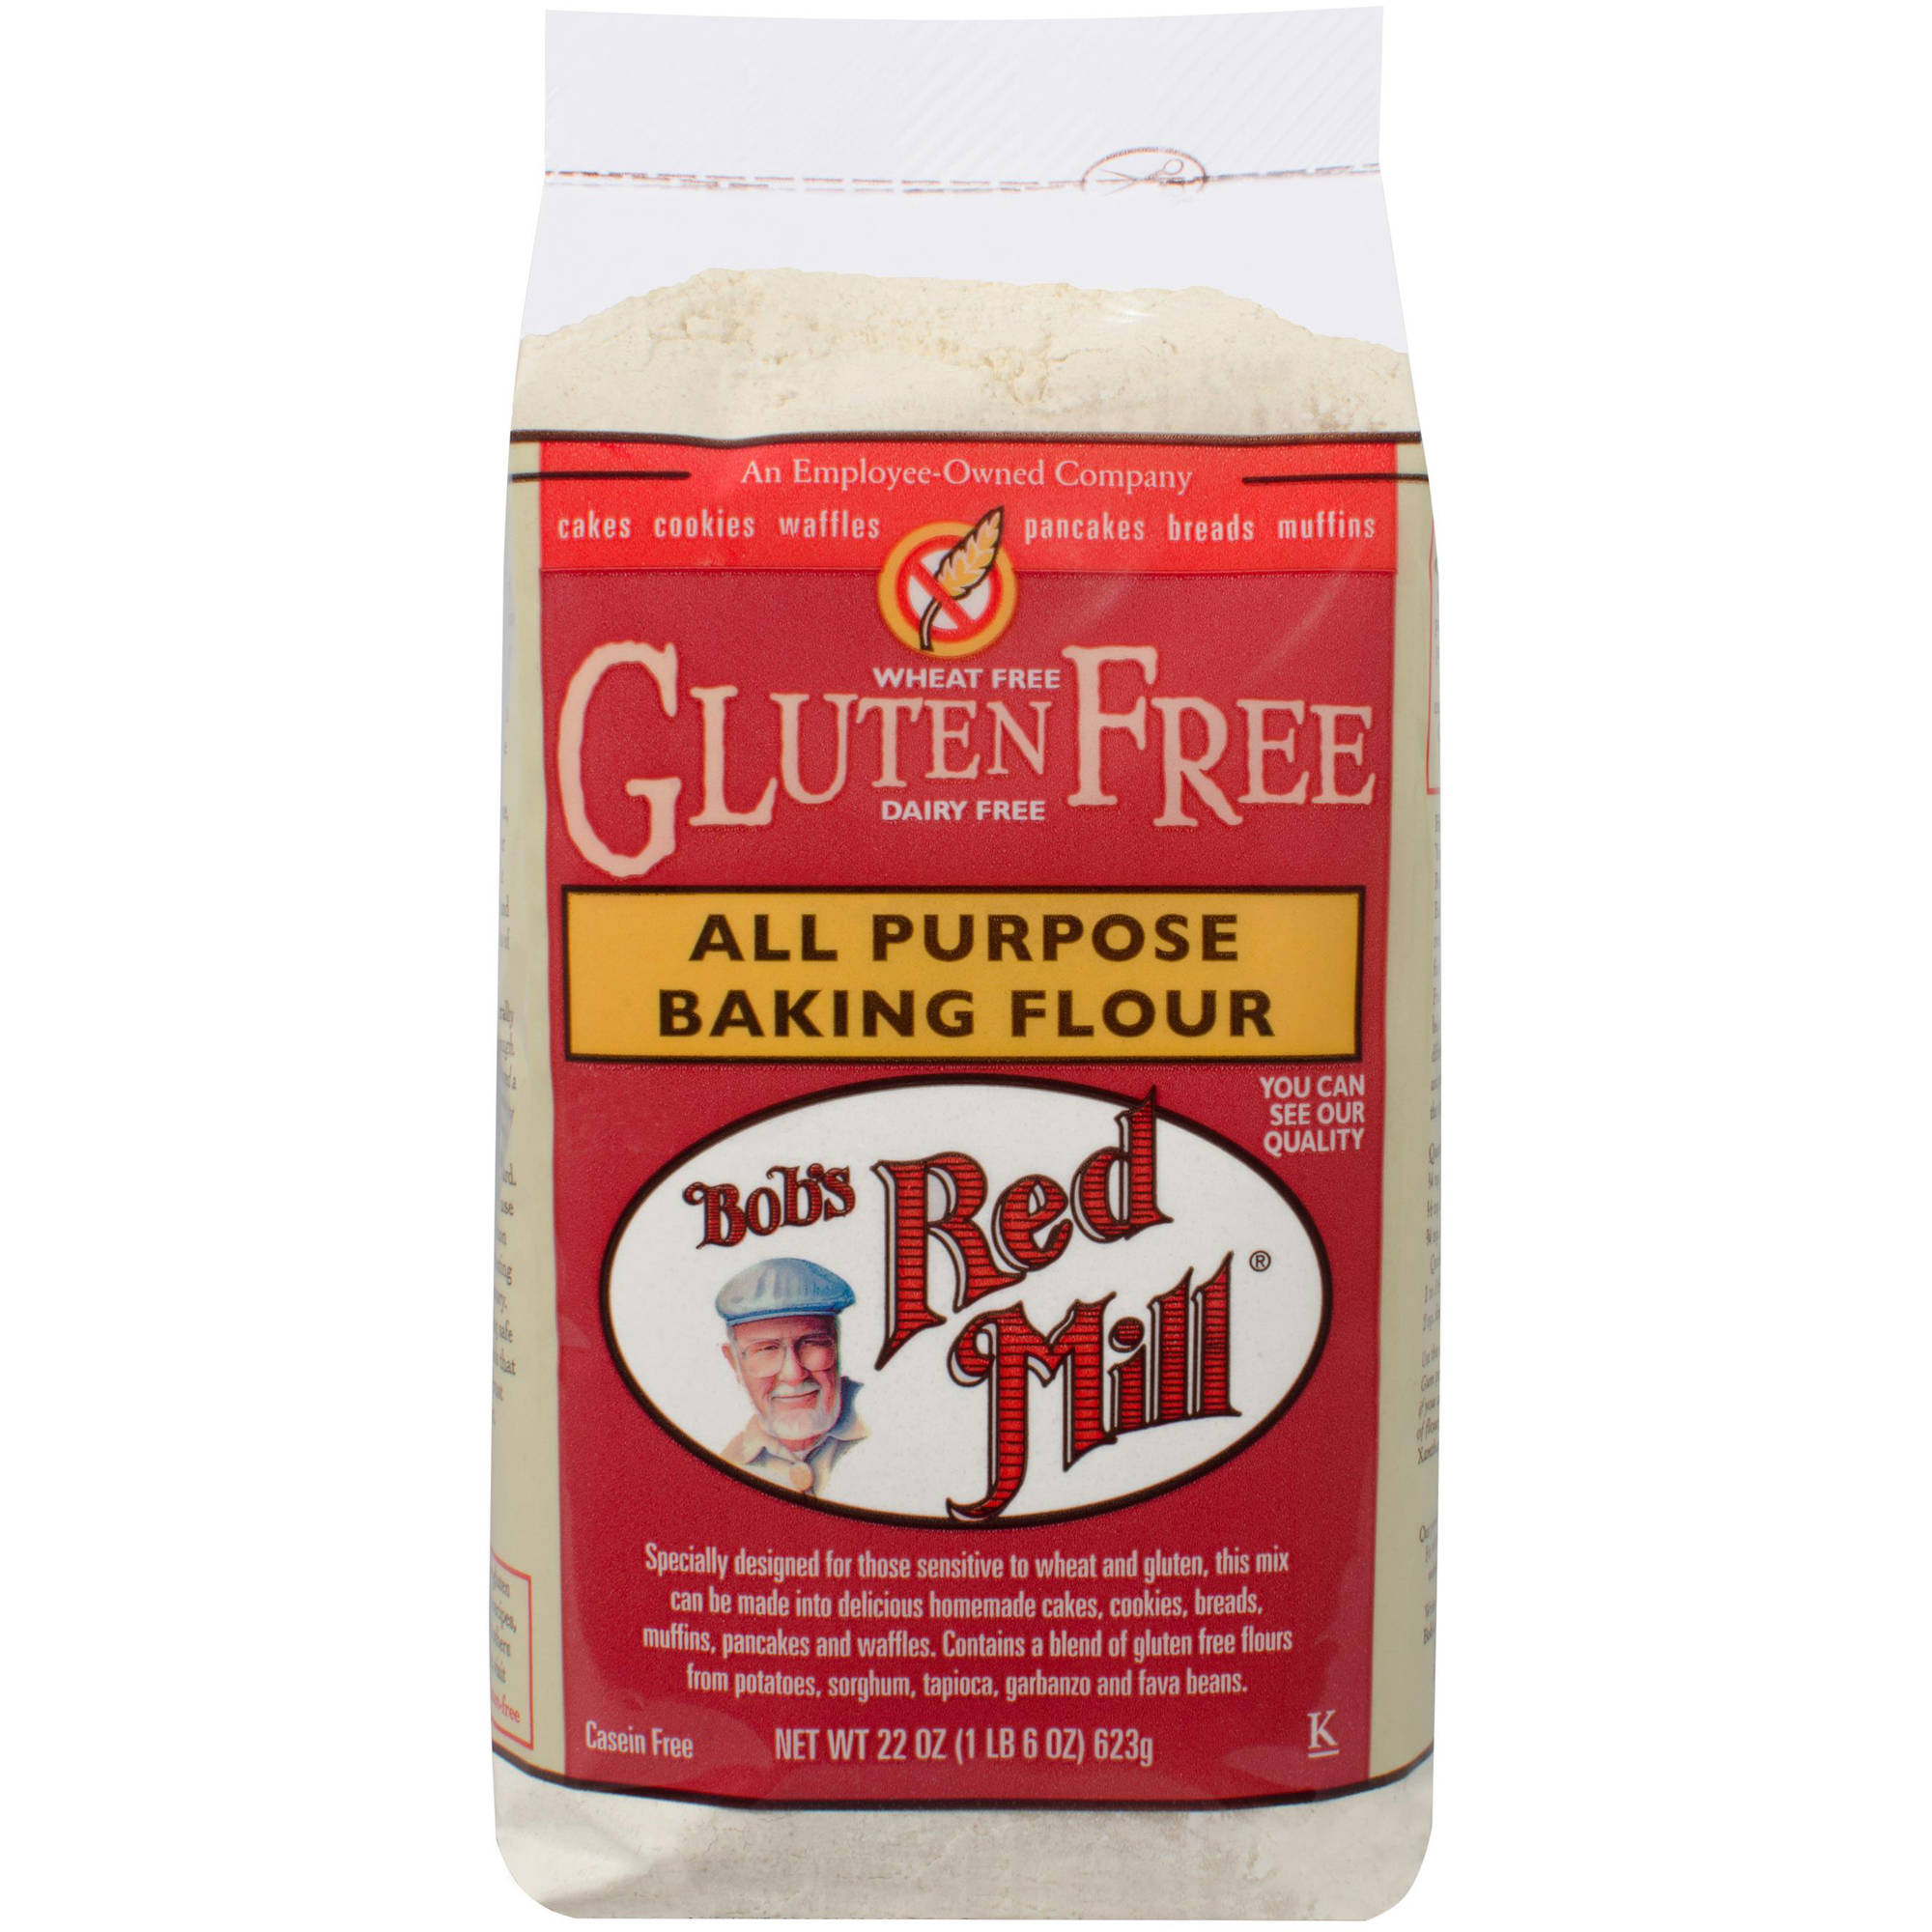 Bob's Red Mill All Purpose Baking Flour, 22 oz (Pack of 4)